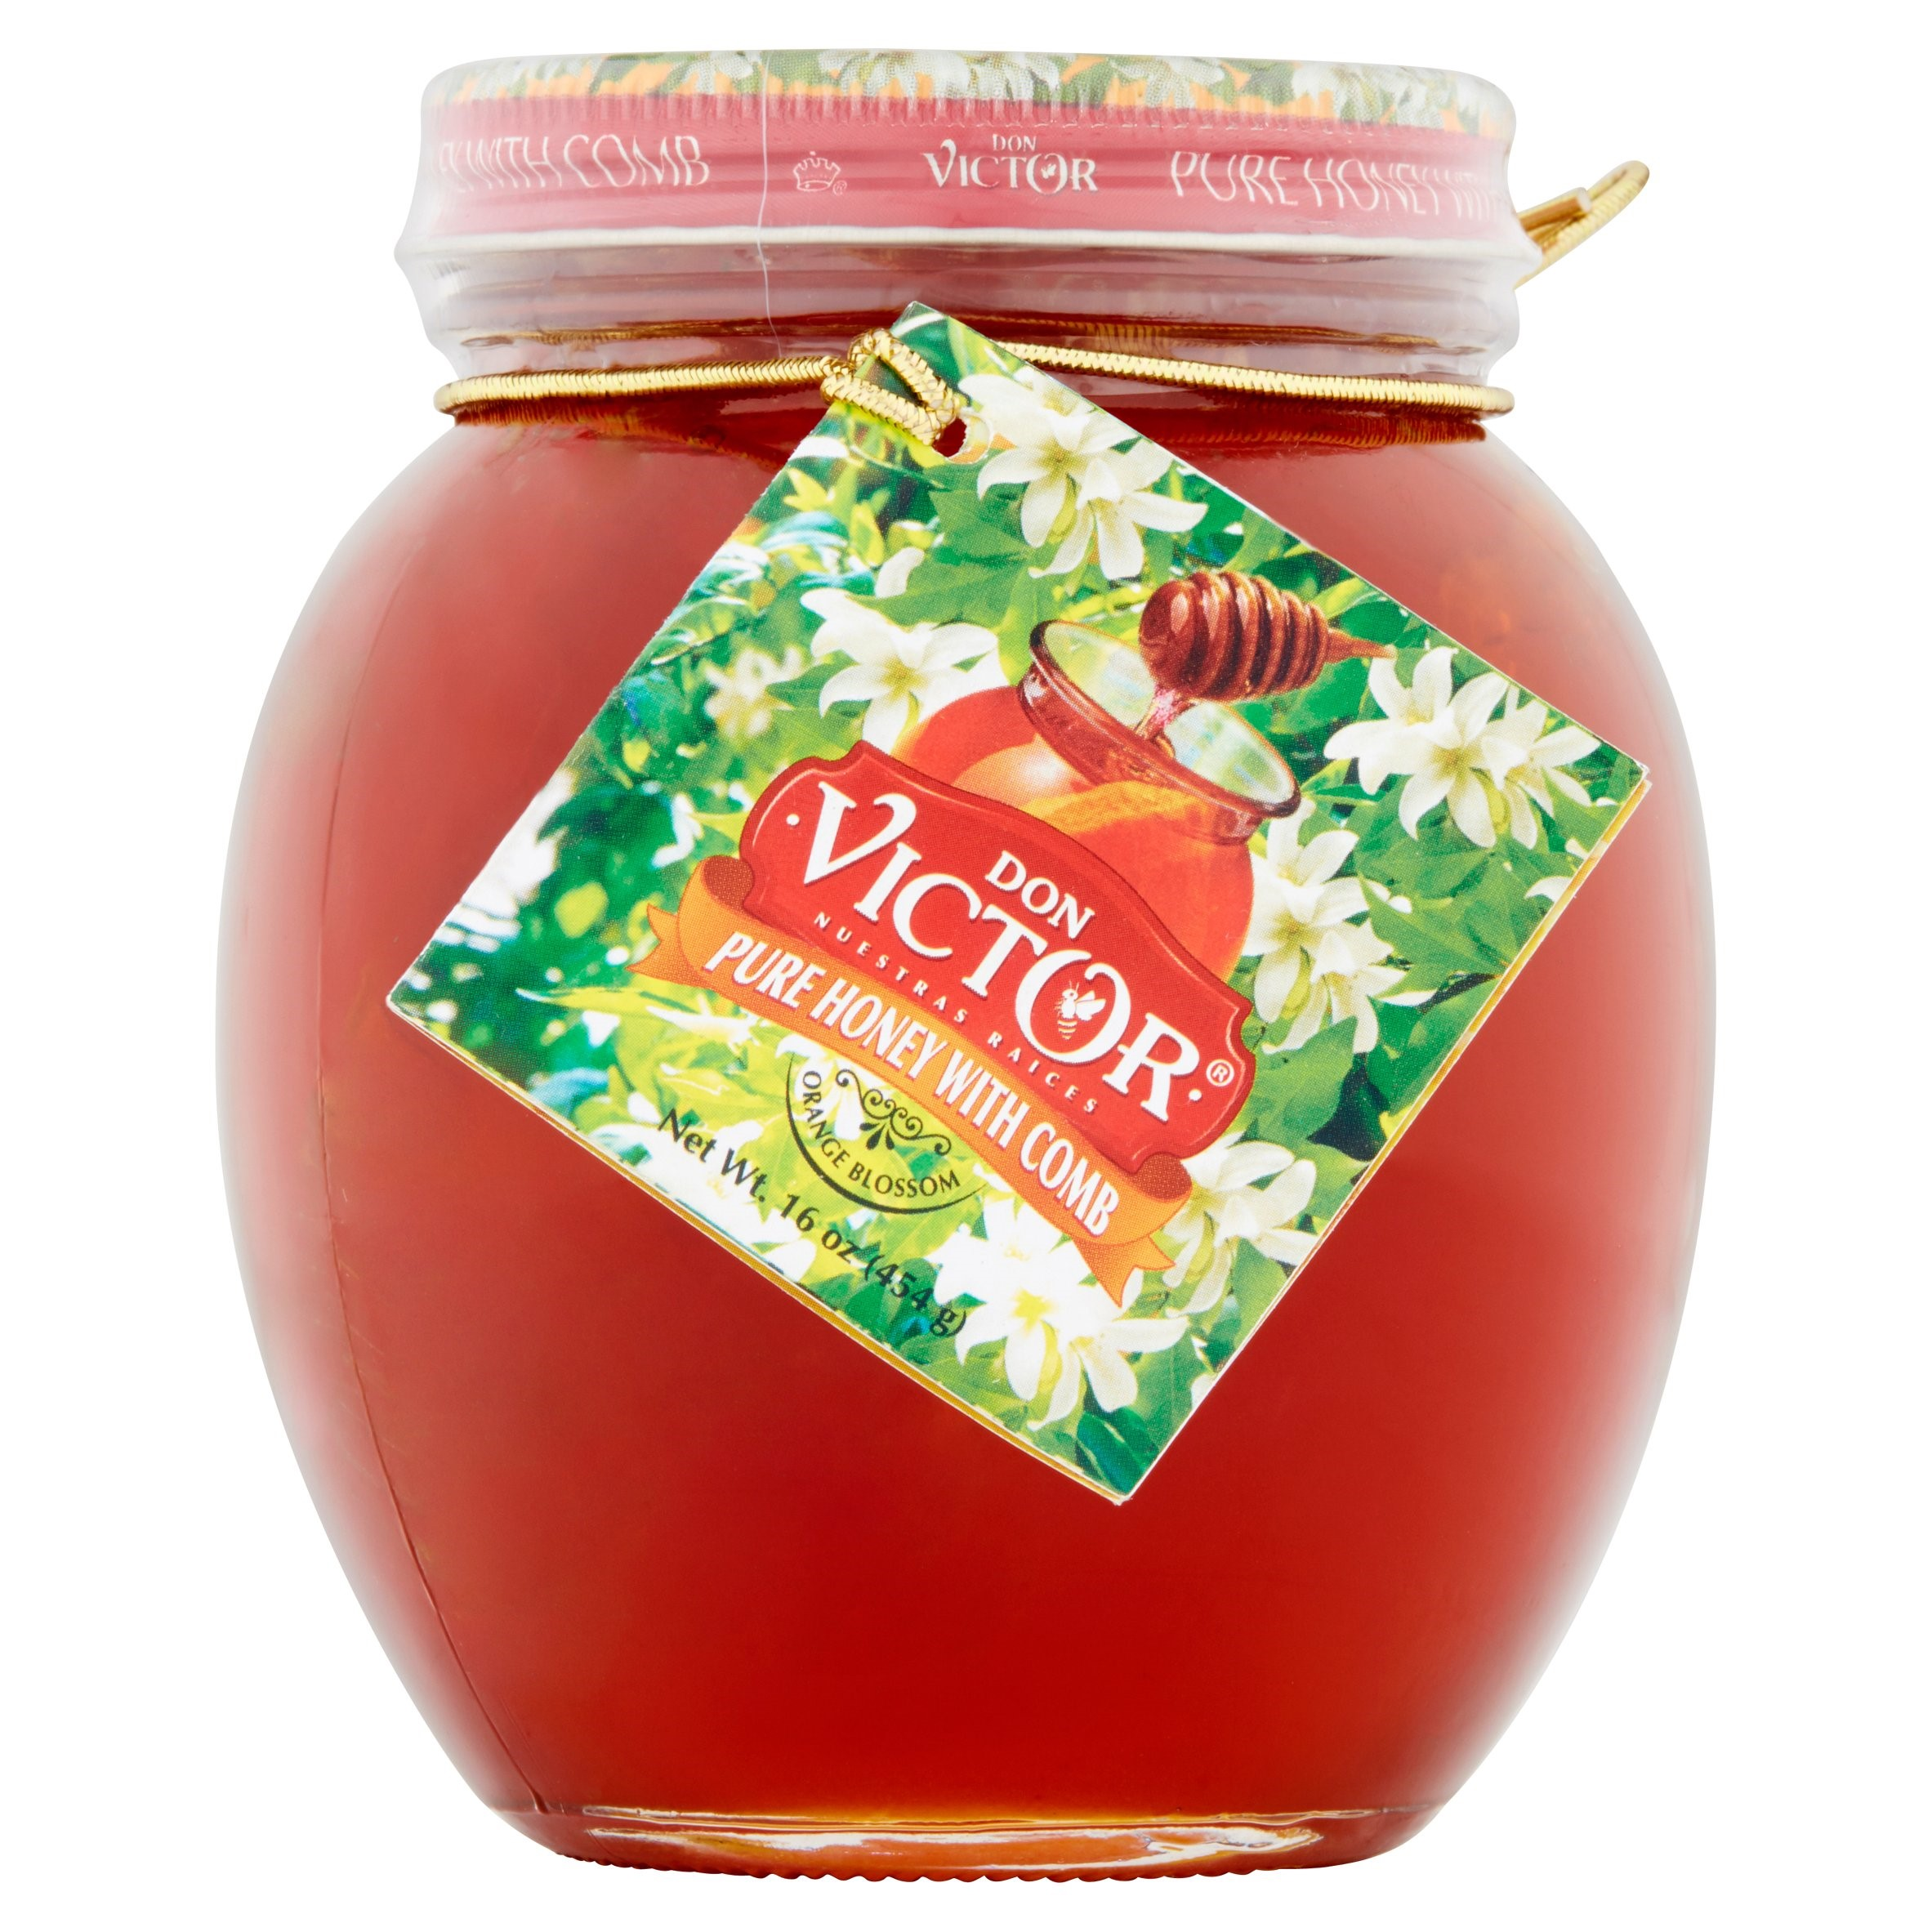 Don Victor Pure Honey with Comb, 16 Oz